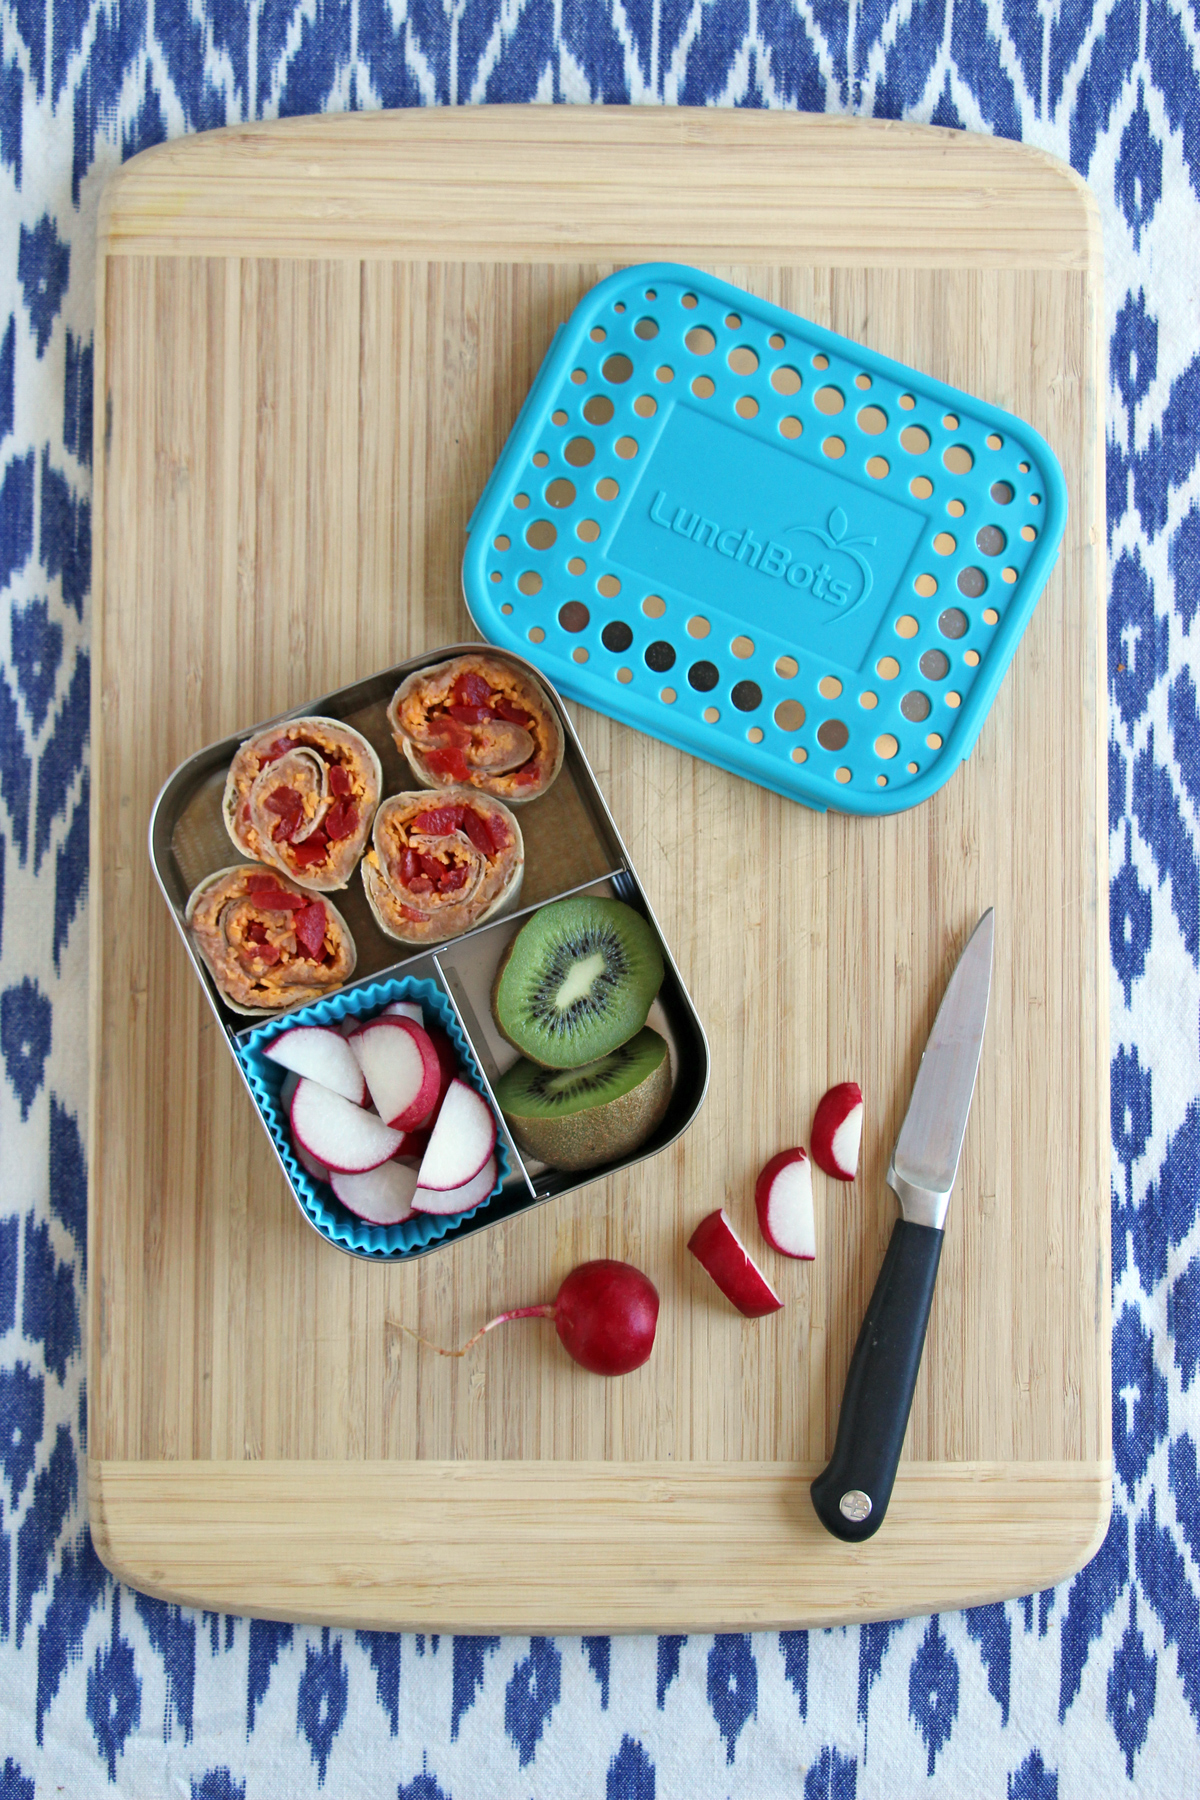 699aeade76c0 Our 10 Top Lunch Boxes for Back to School | Martha Stewart